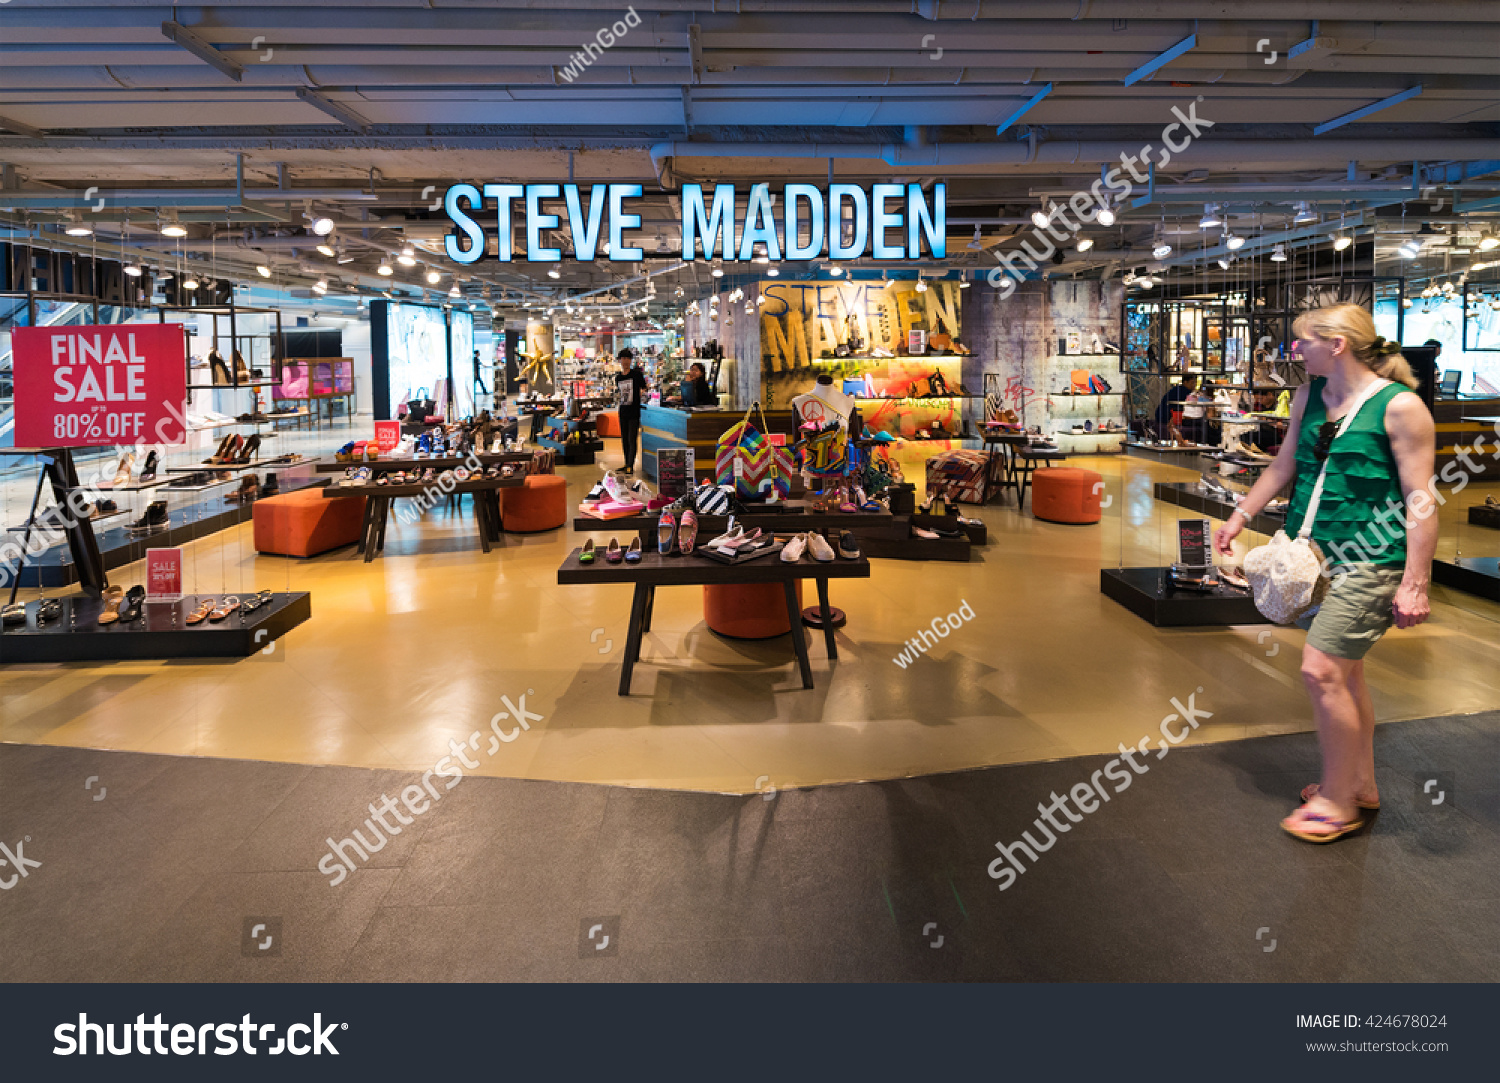 BANGKOK - MARCH 17, 2016 : A view at the Steve Madden store of ladies